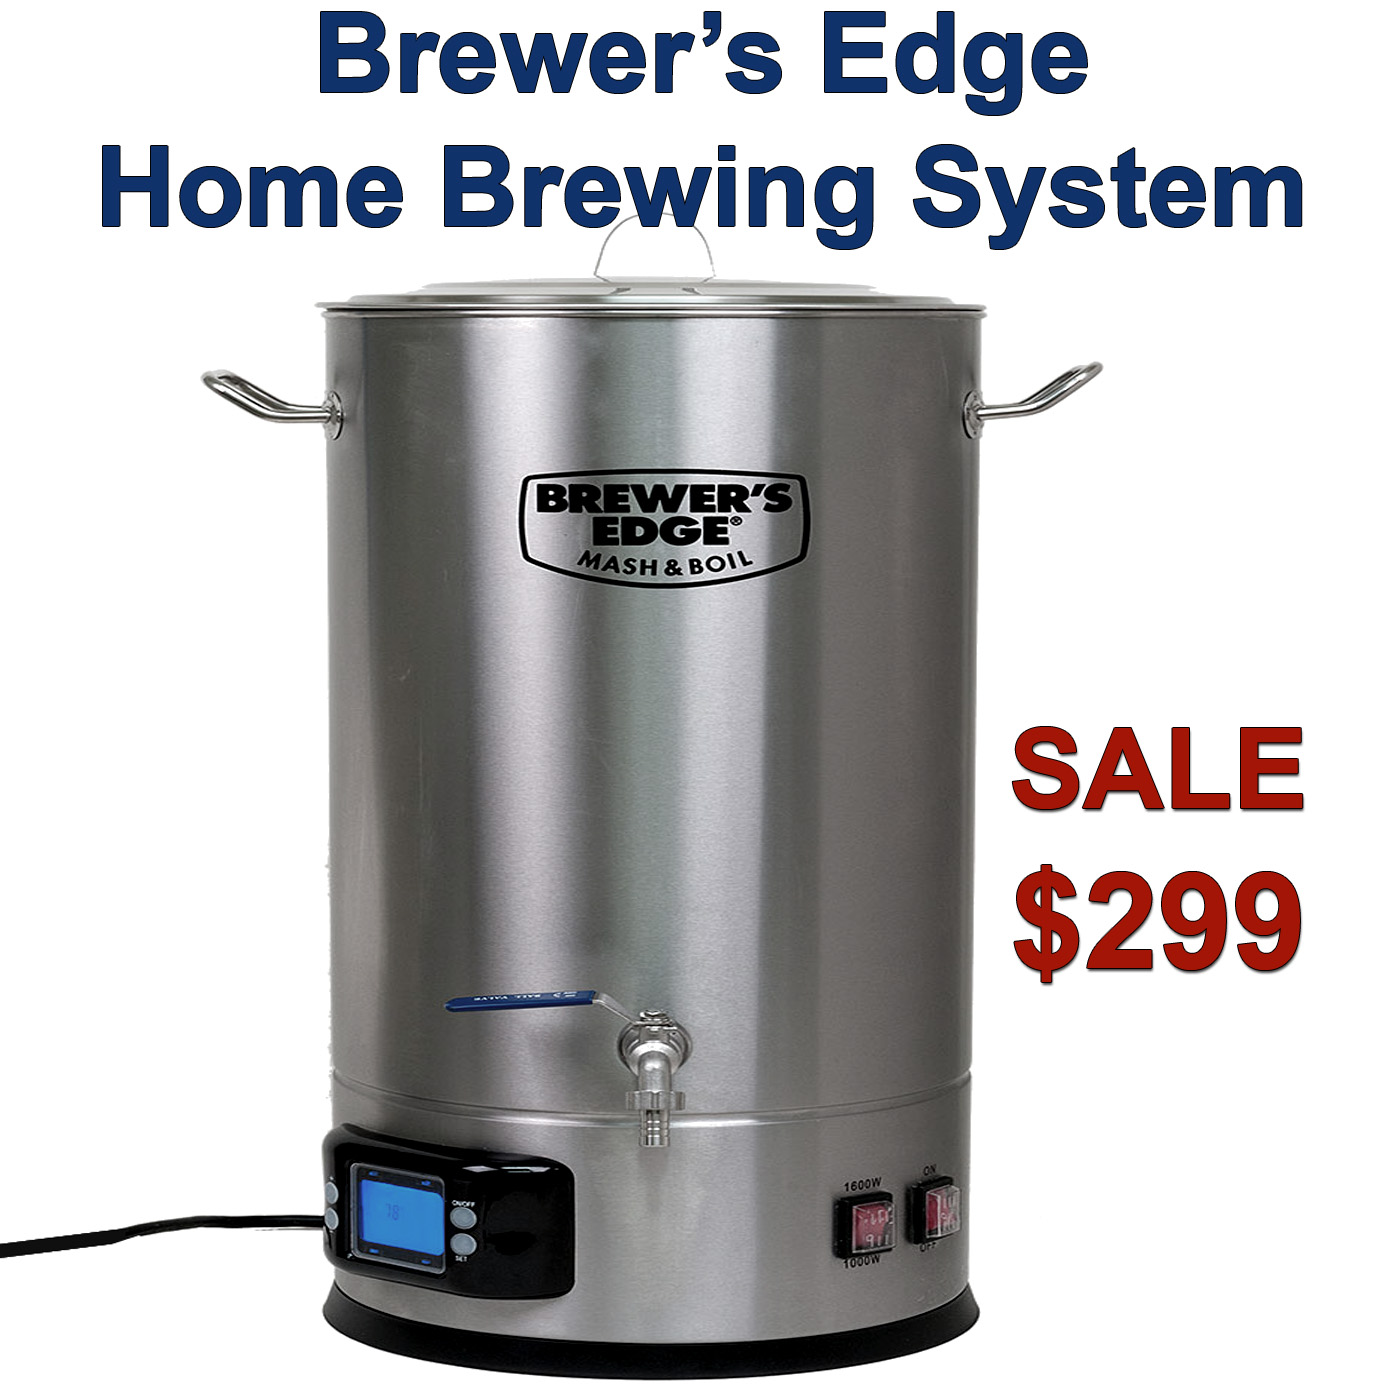 Home brewing systems for sale